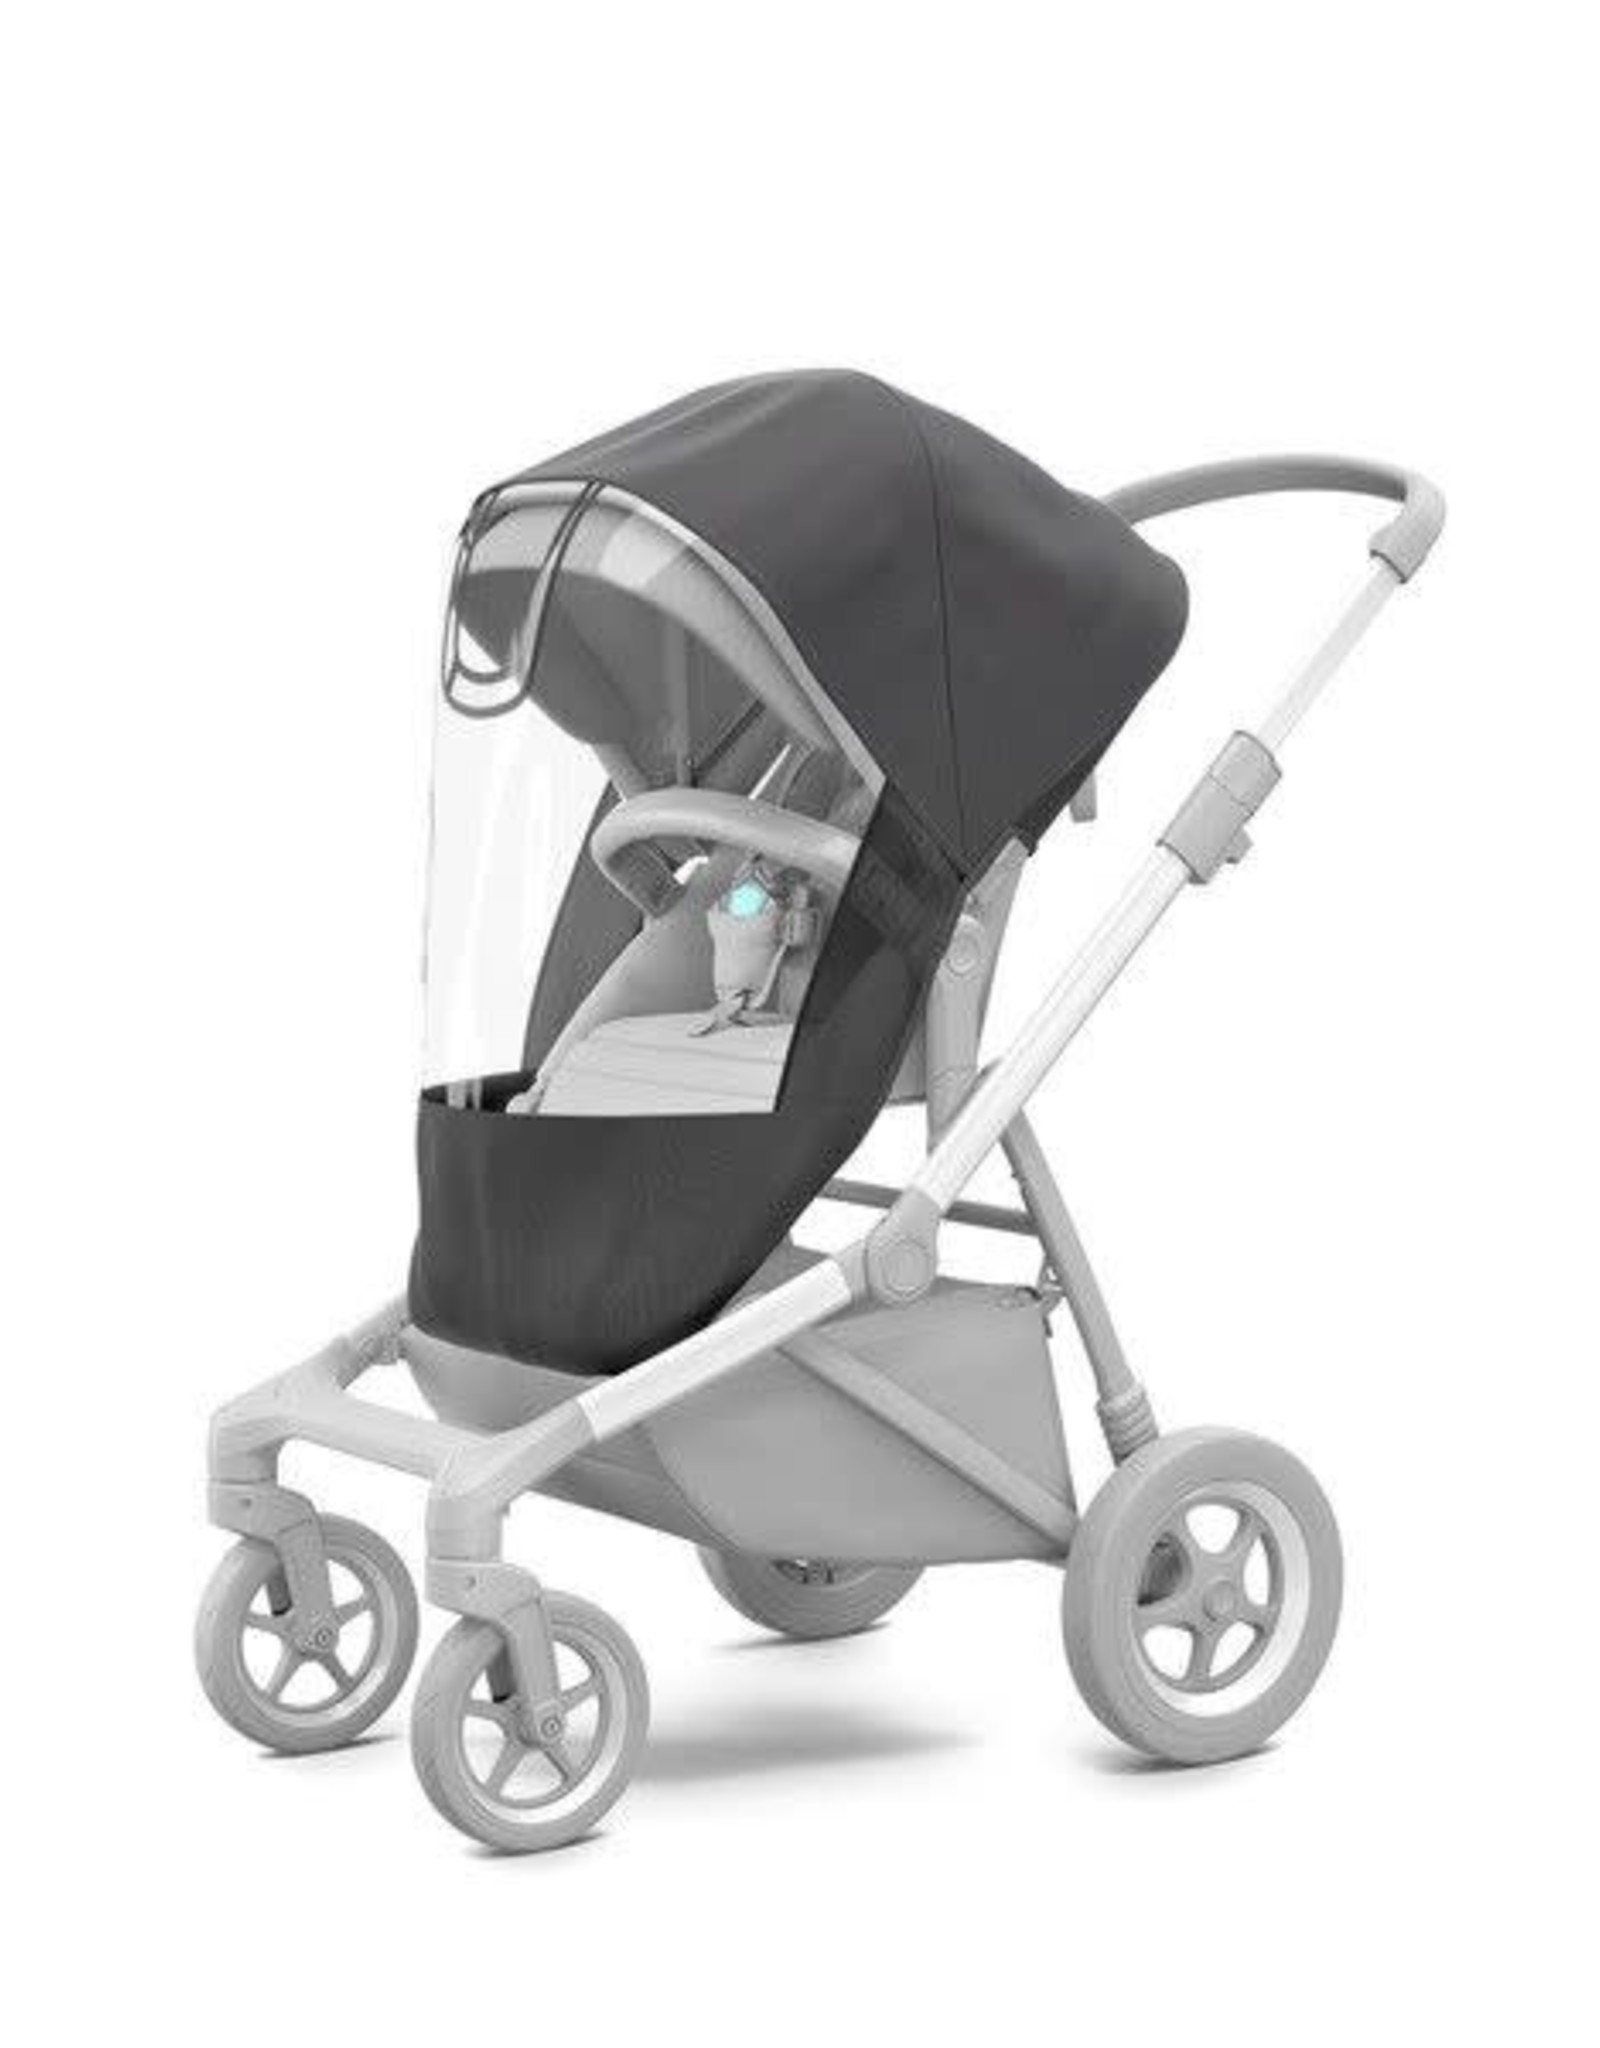 Thule Sleek City Stroller Sibling Seat